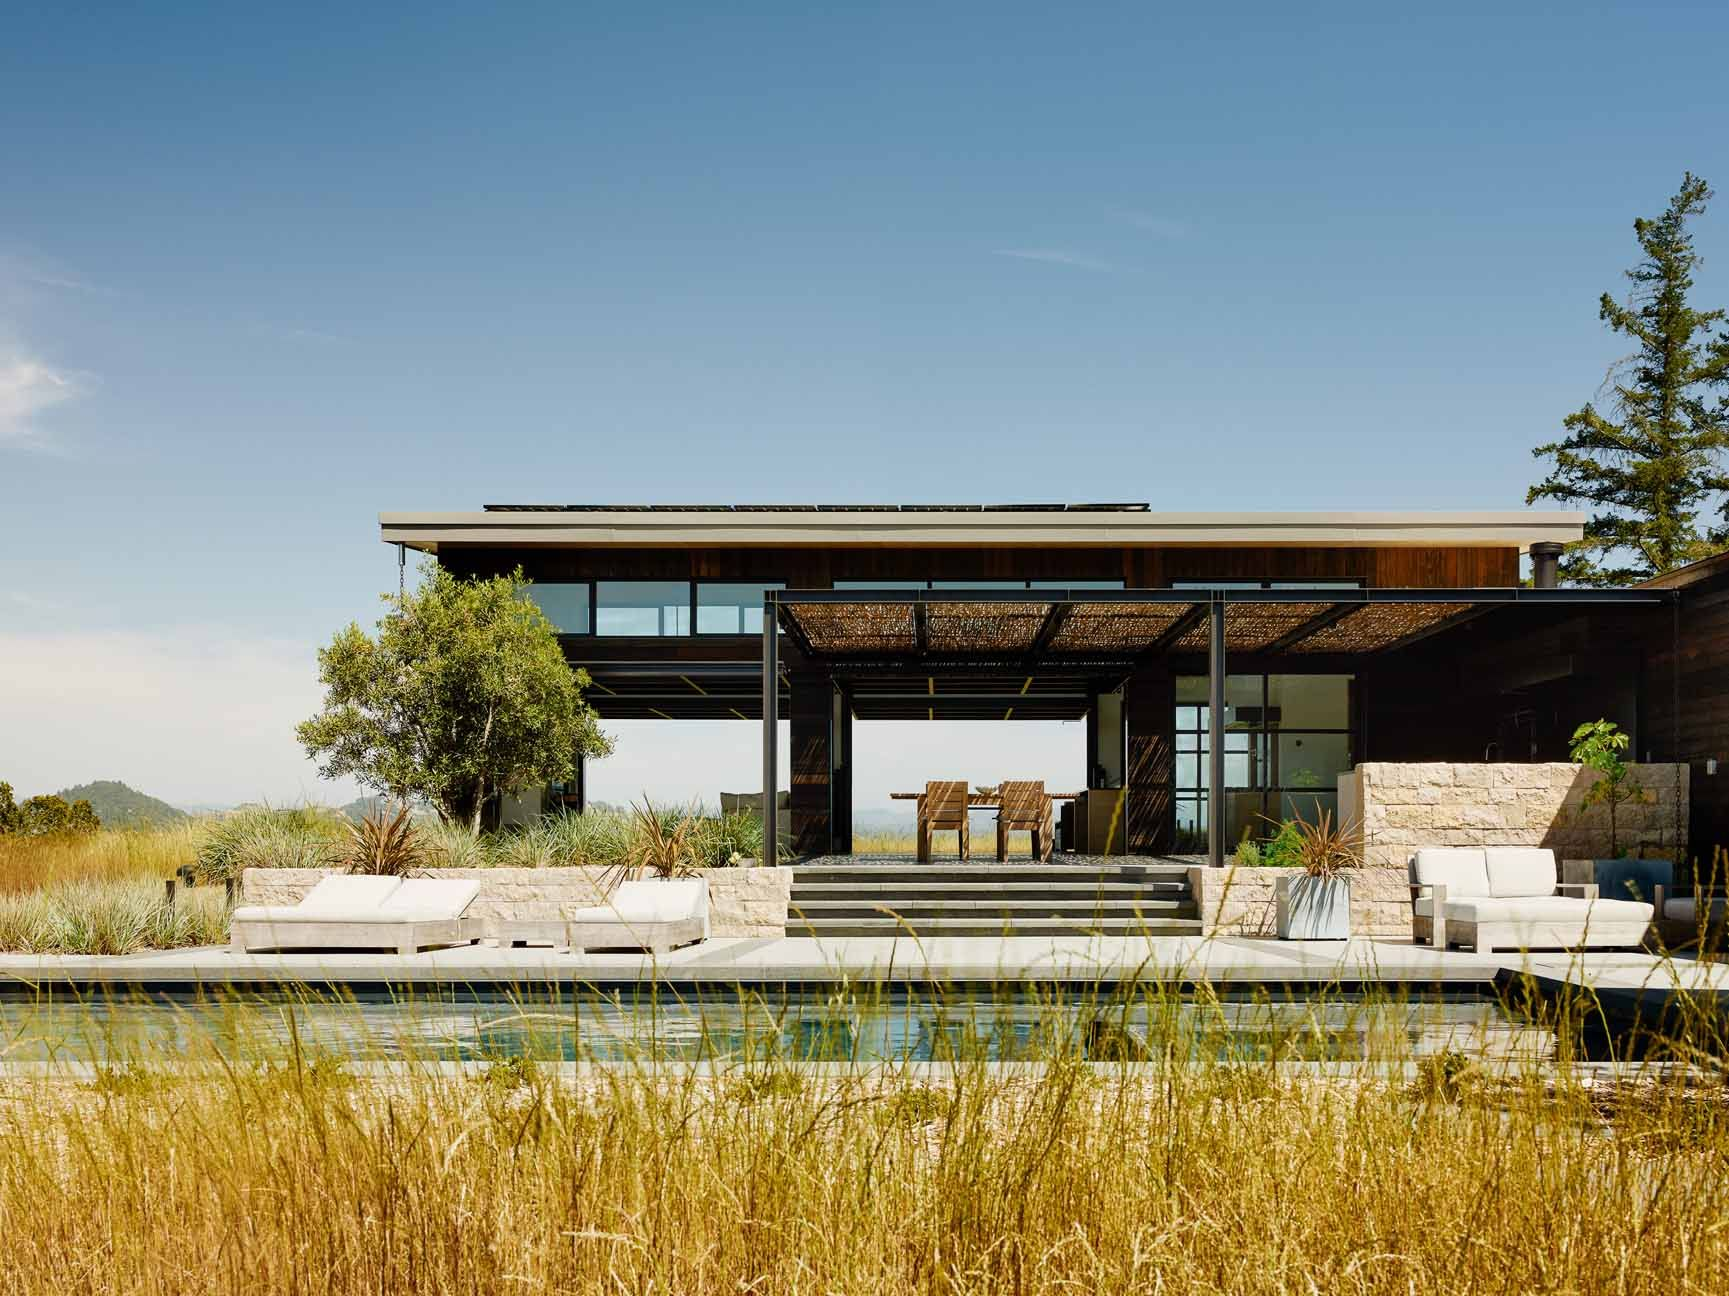 Merveilleux Squatting On A Ridge Line Above The City Of Healdsburg, California, Is A  New Stellar Creation From Feldman Architecture, The Healdsburg 1 Rural  Retreat.